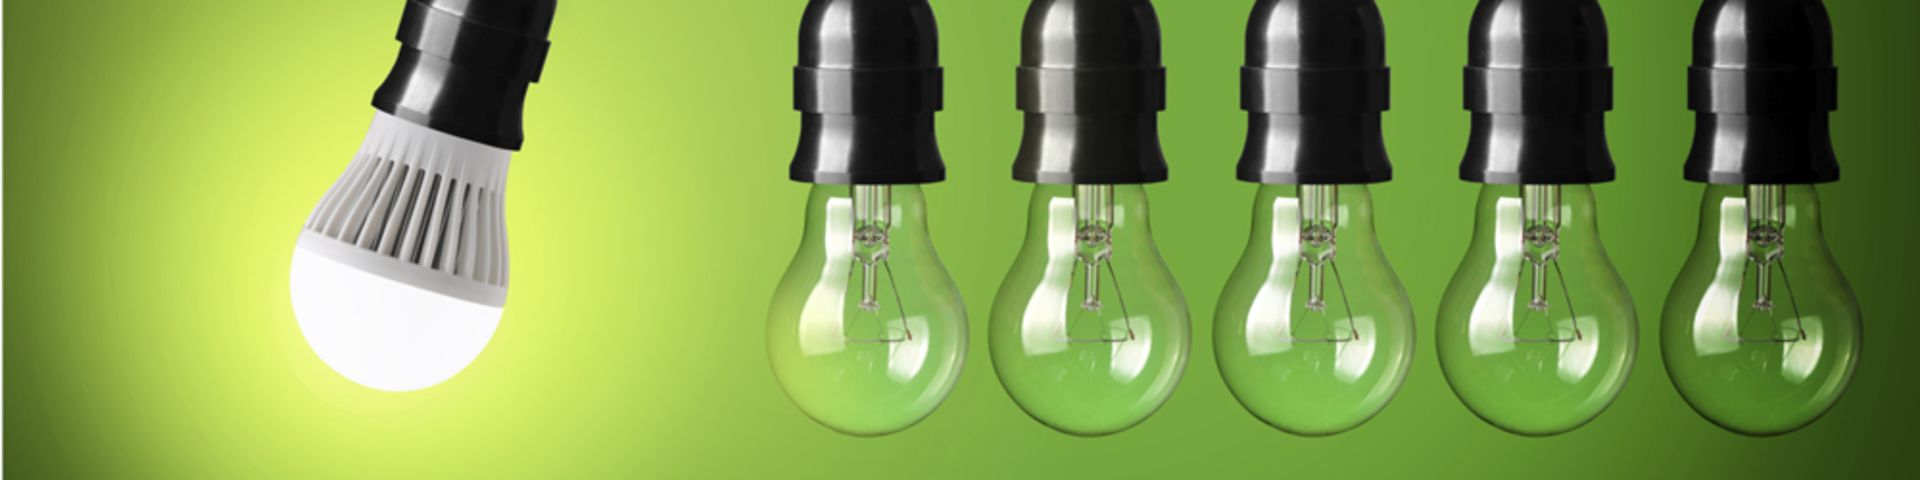 10 TIPS TO HELP SAVE ON ENERGY CONSUMPTION AT HOME